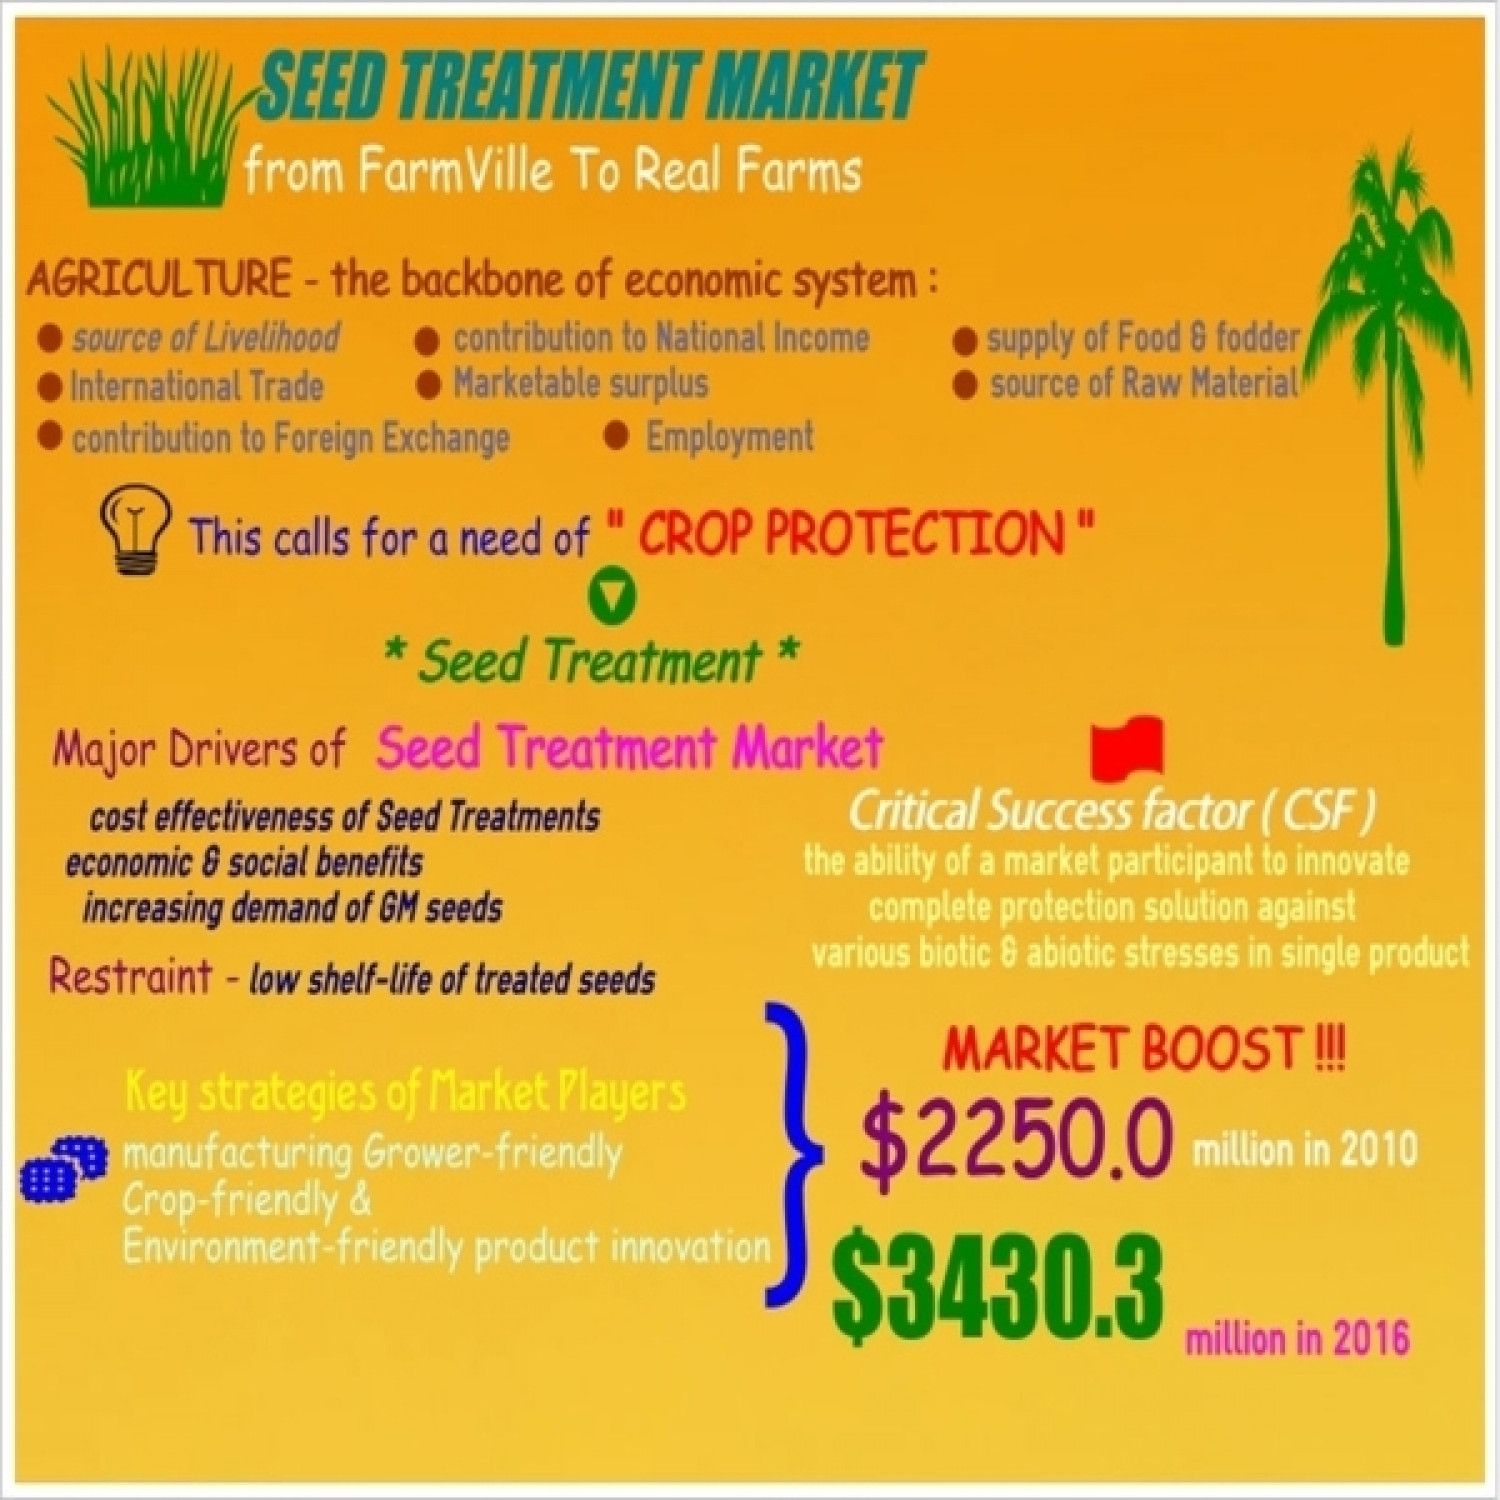 Market Research - Seed Treatment : MarketsandMarkets Infographic